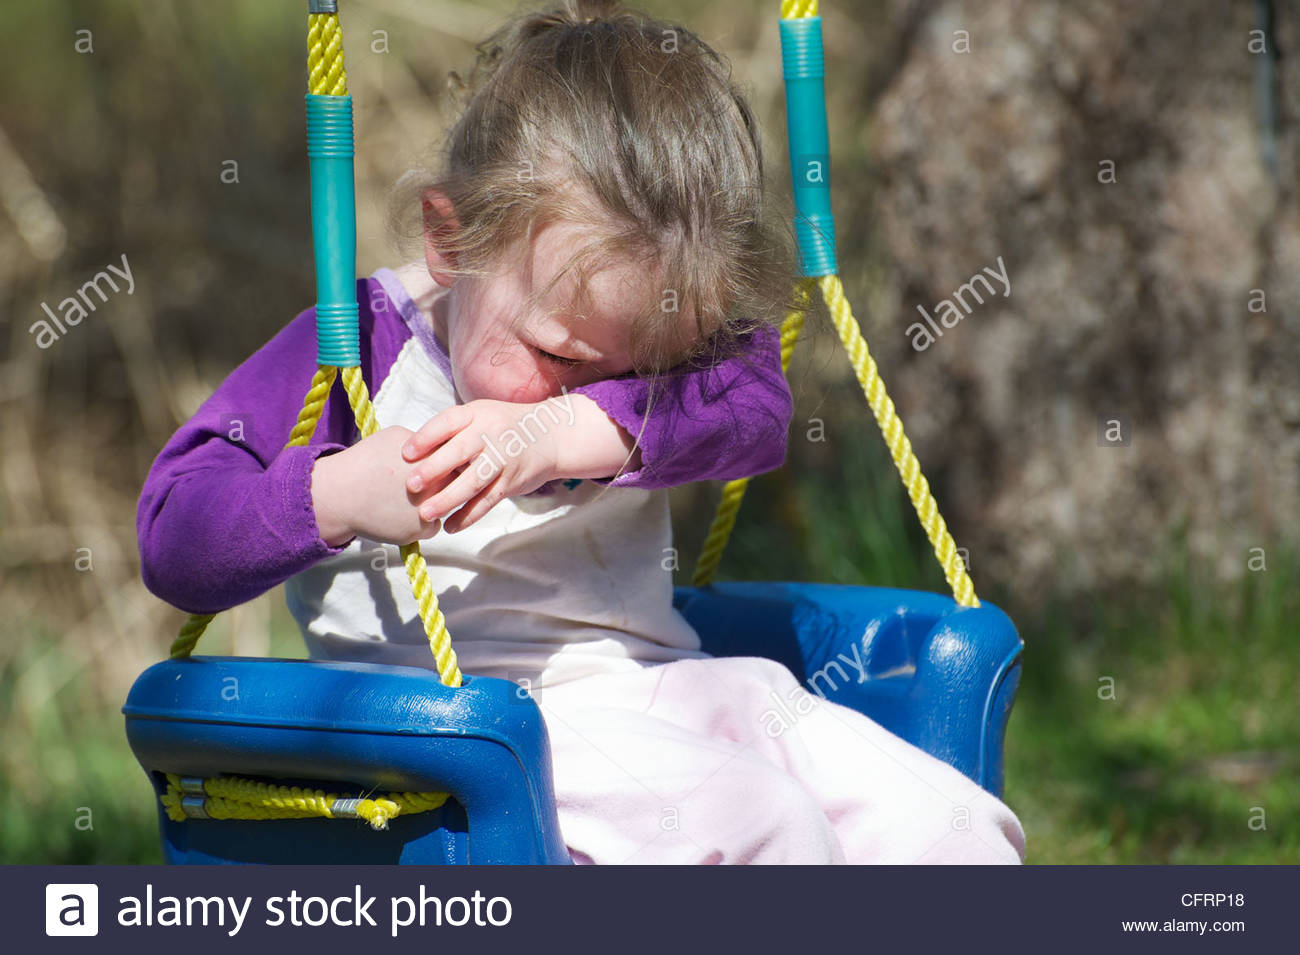 Close up image of a toddler crying on her swing in the summer. - Stock Image